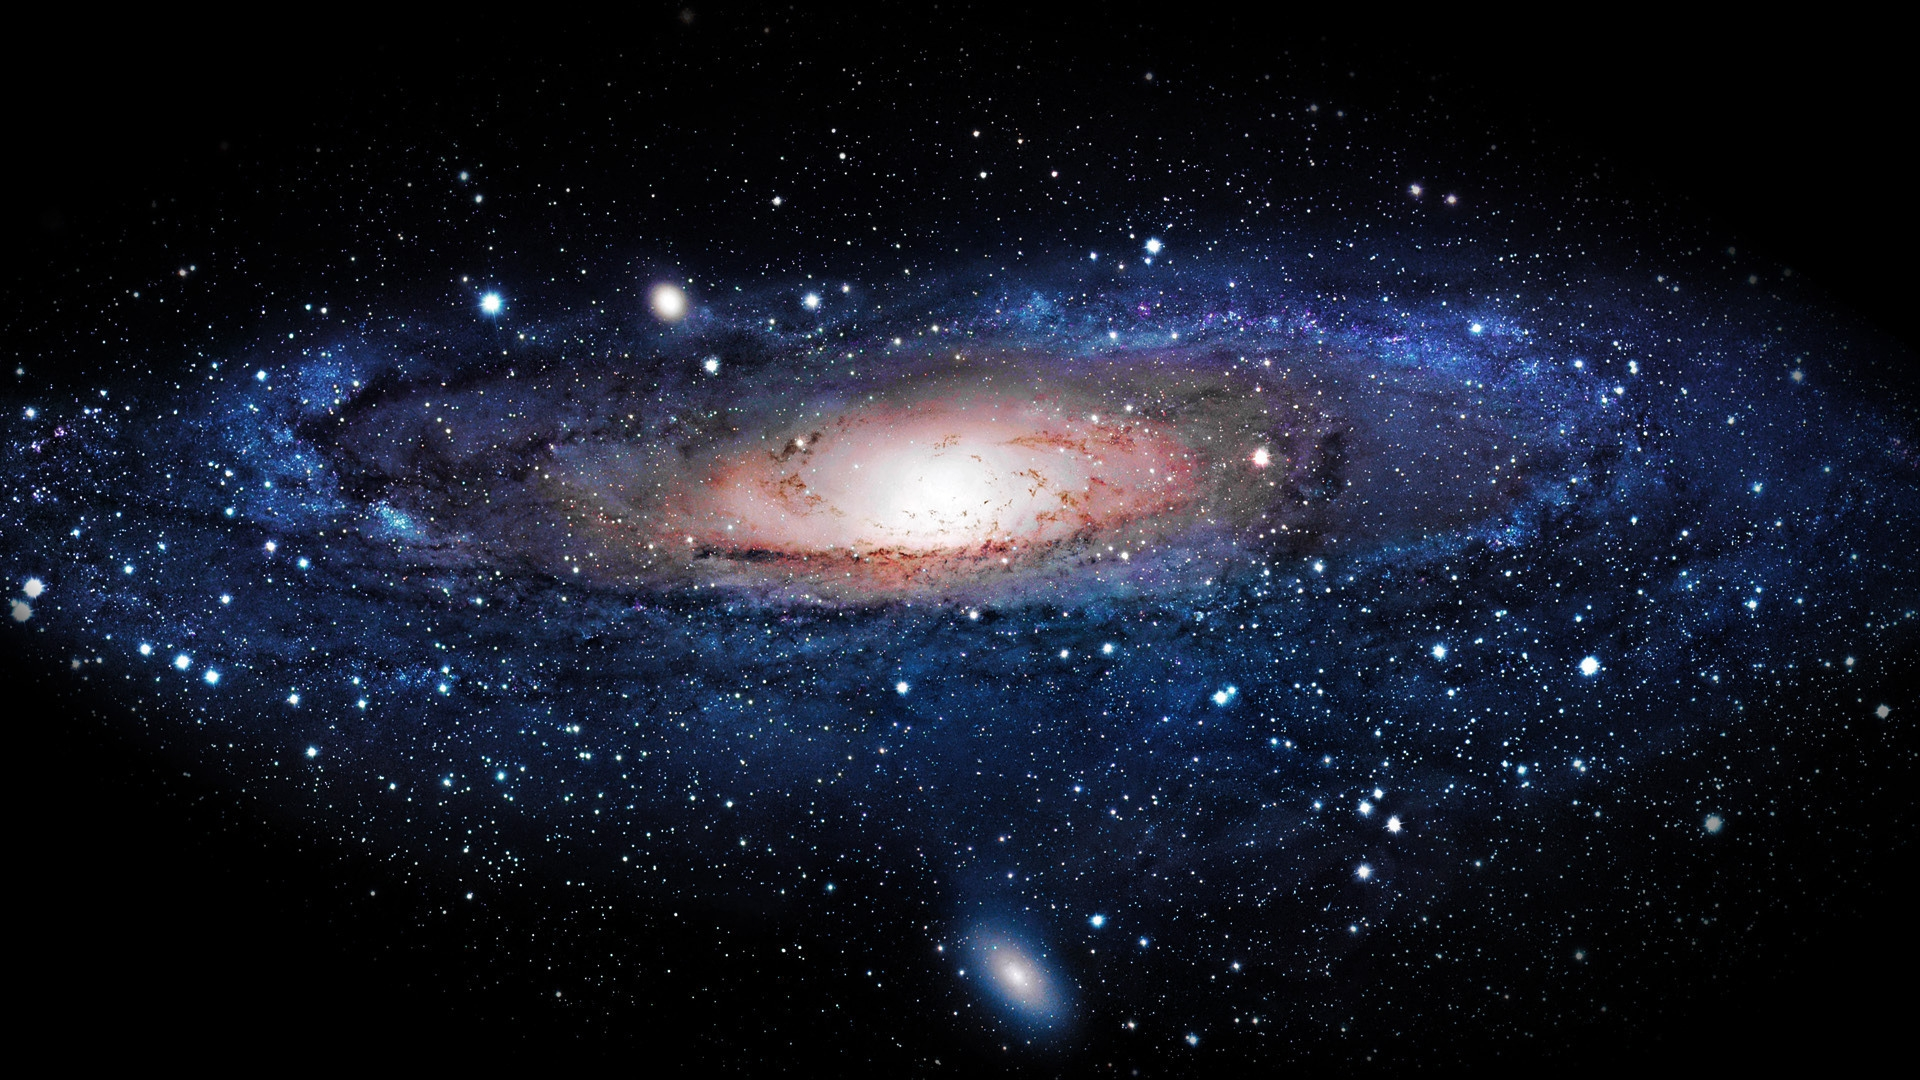 space cool backgrounds wallpapers | Desktop Backgrounds for Free HD ...